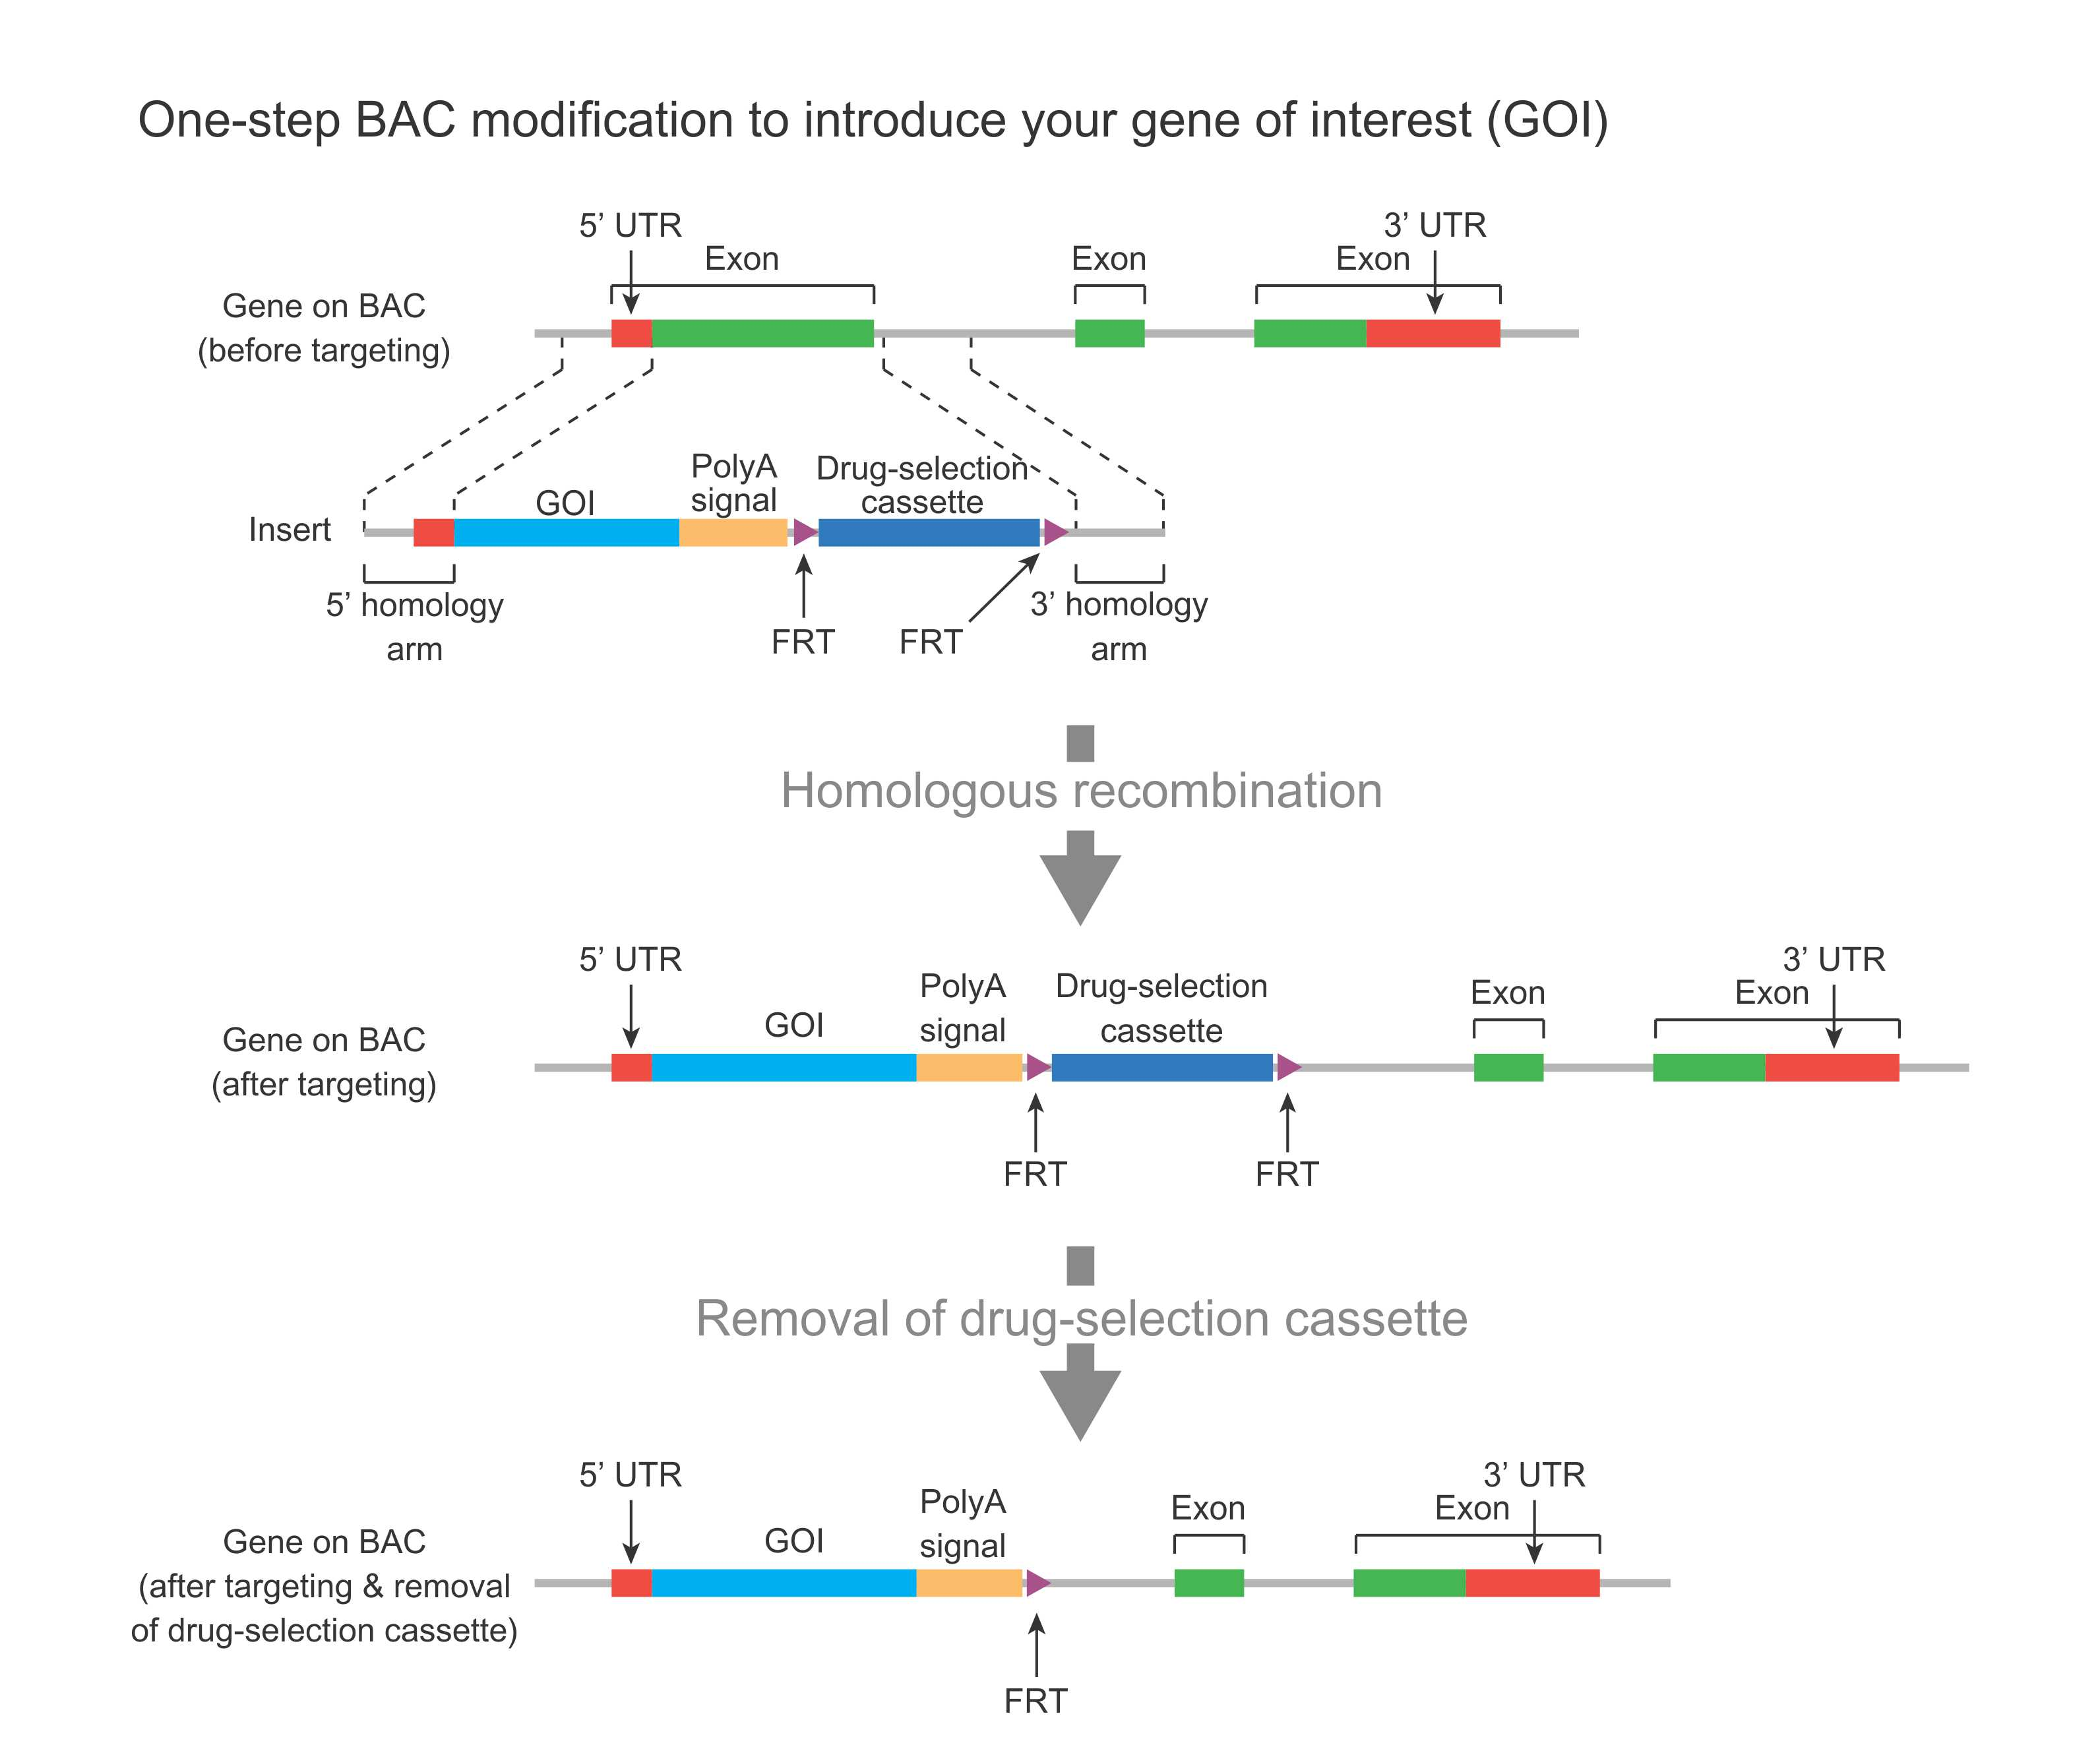 one-step bac modification to introduce your gene of interest